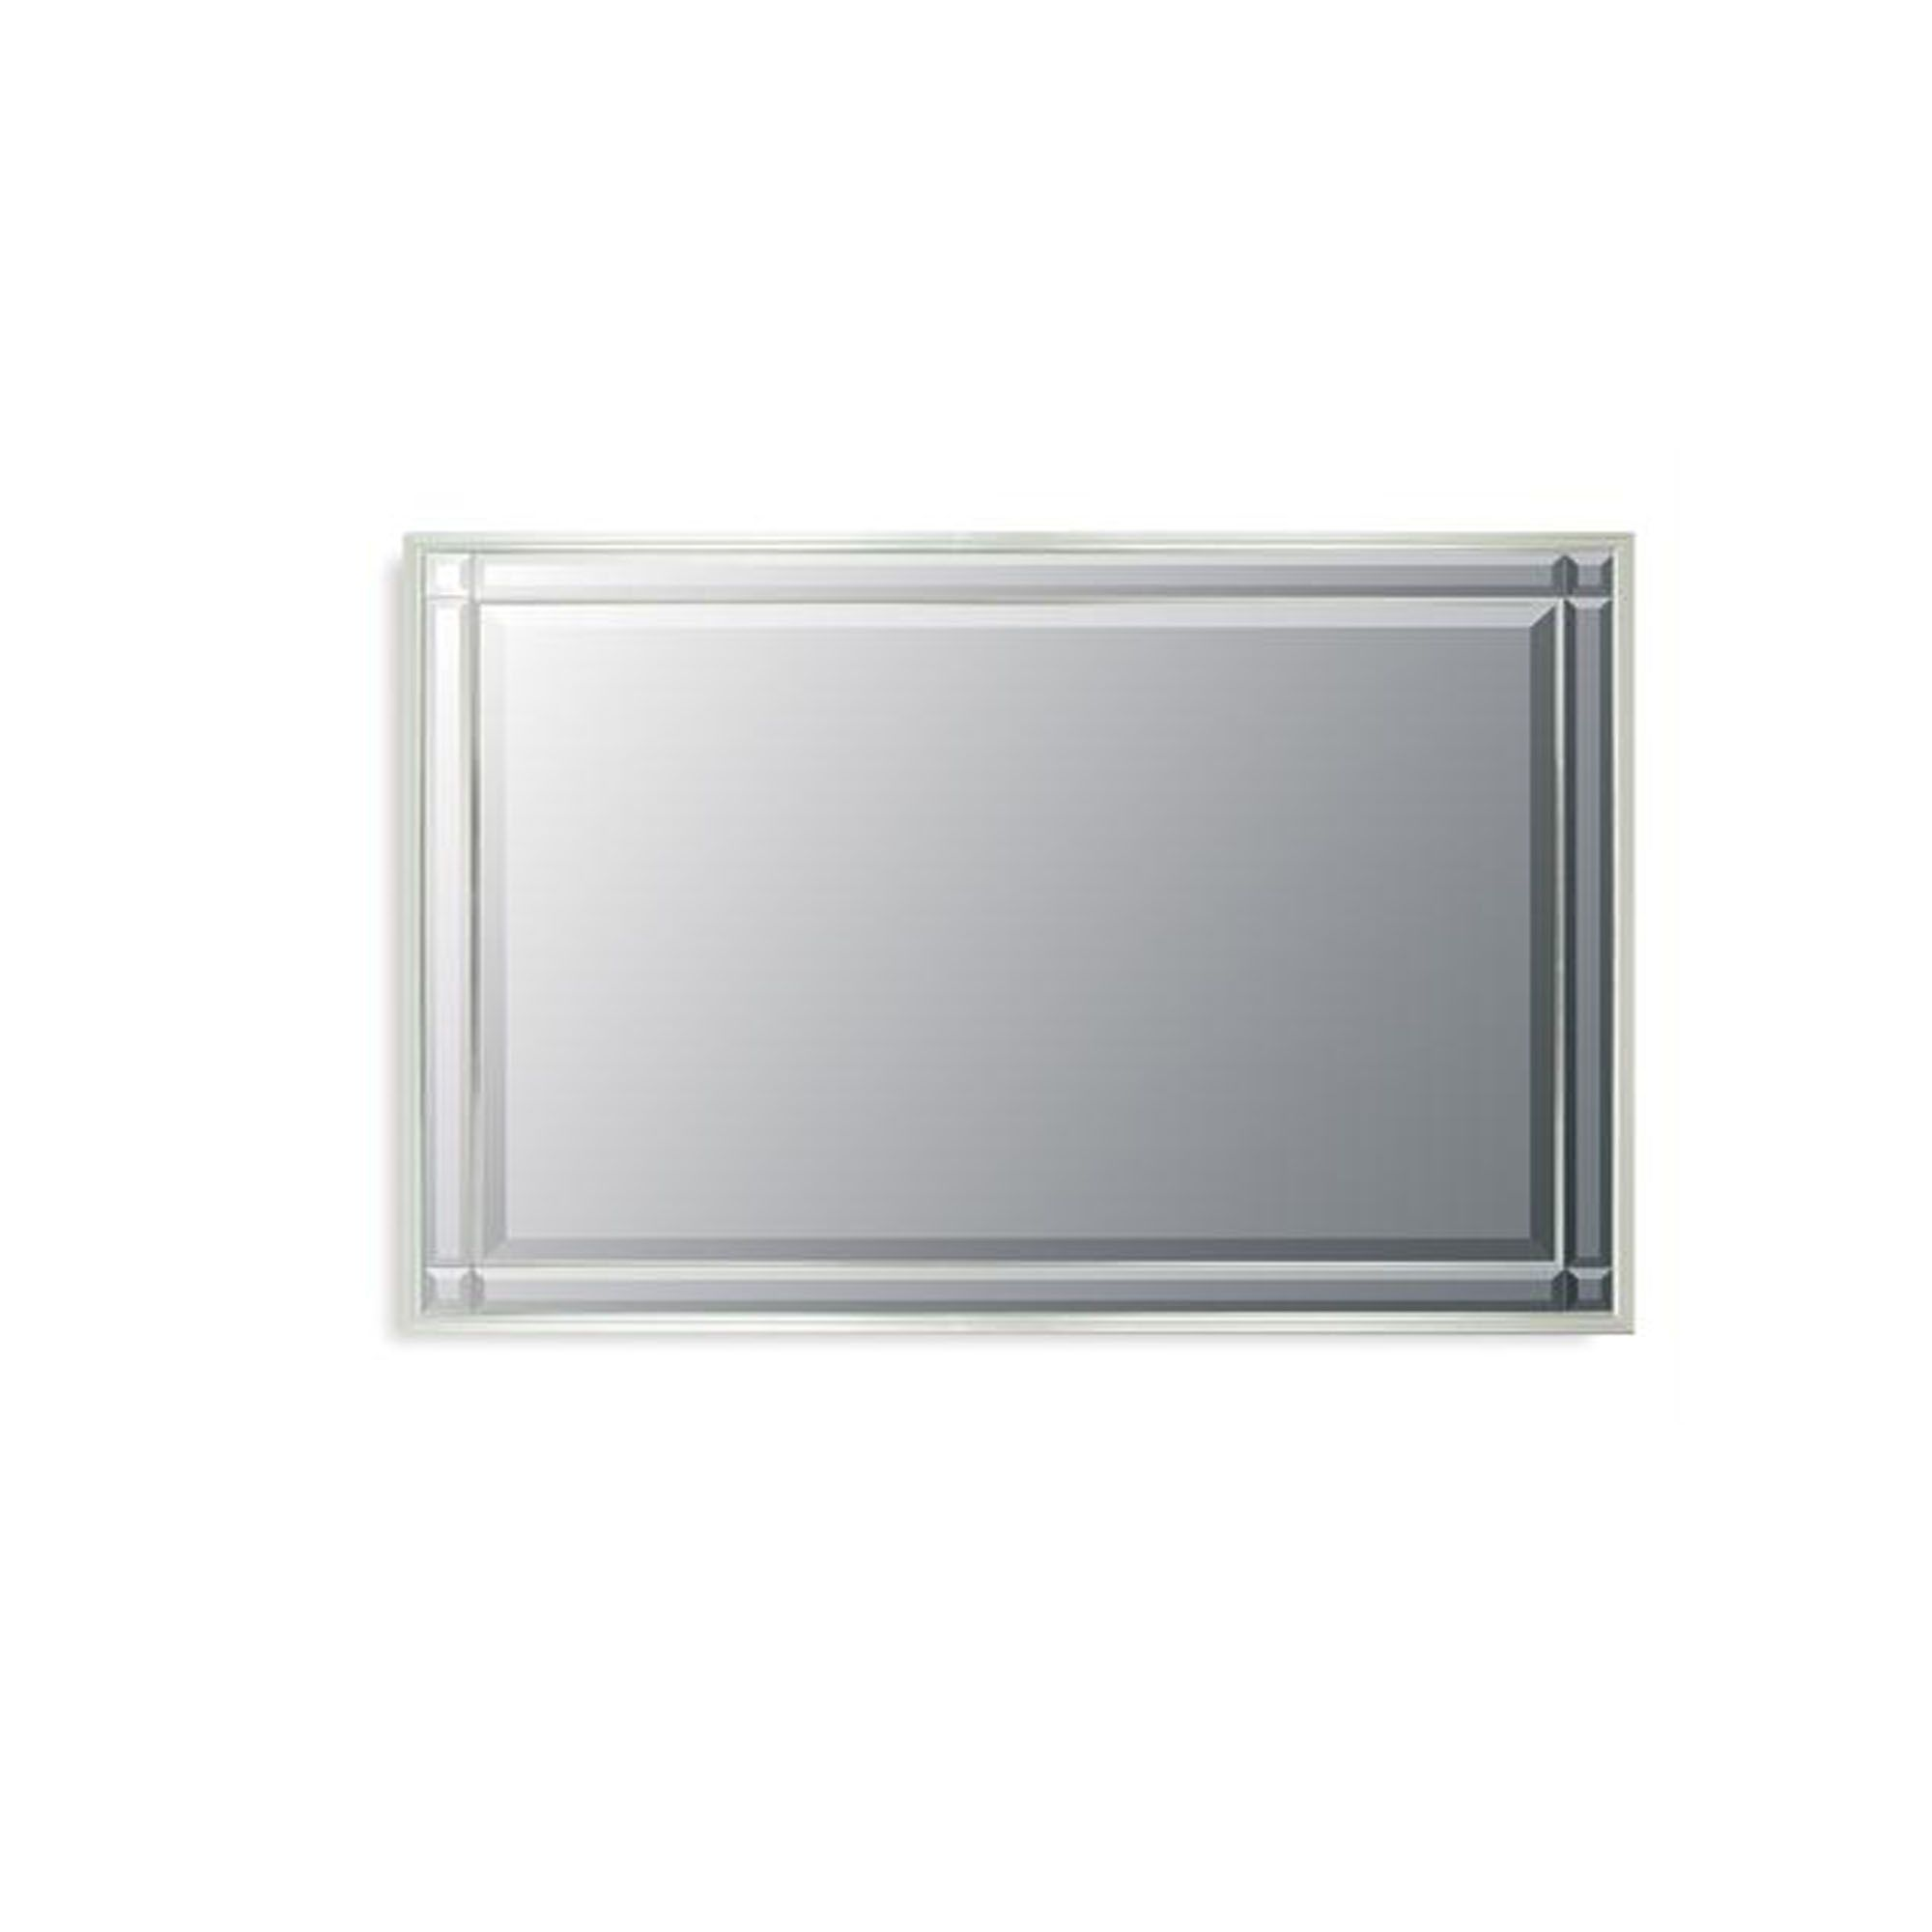 Midland Mirrors Silver Framed Mirror All Mirrors